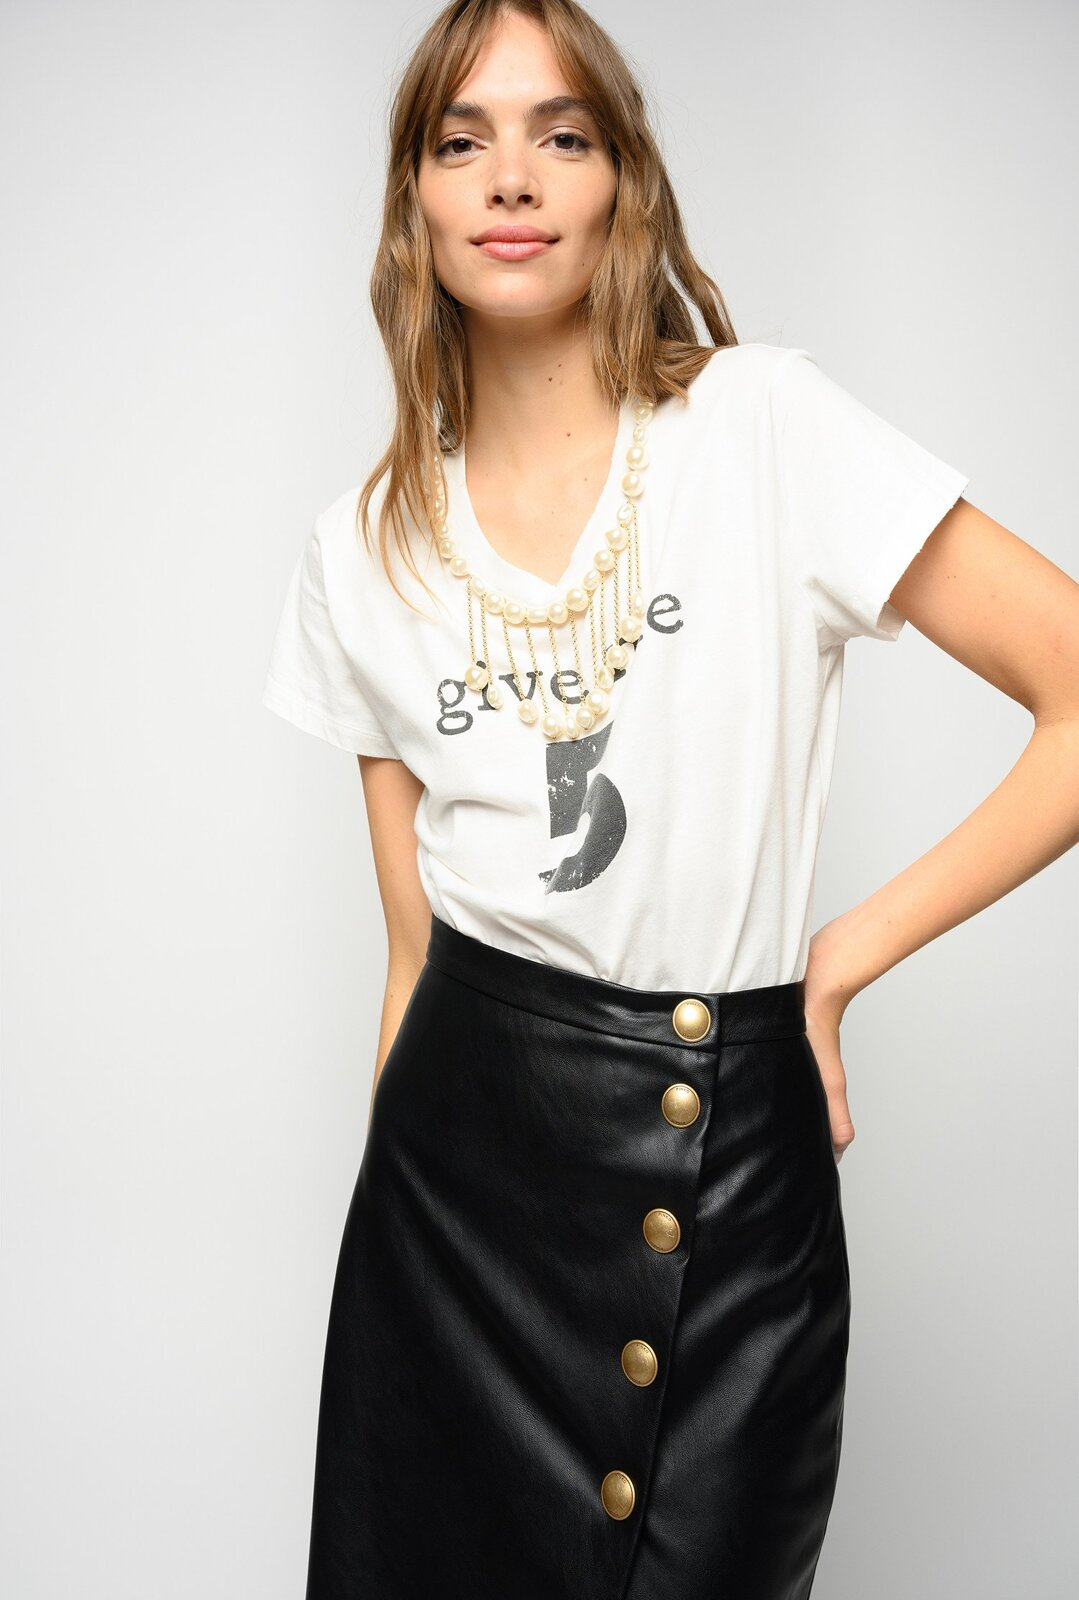 Give Me 5 T-Shirt With Pearls - Pinko